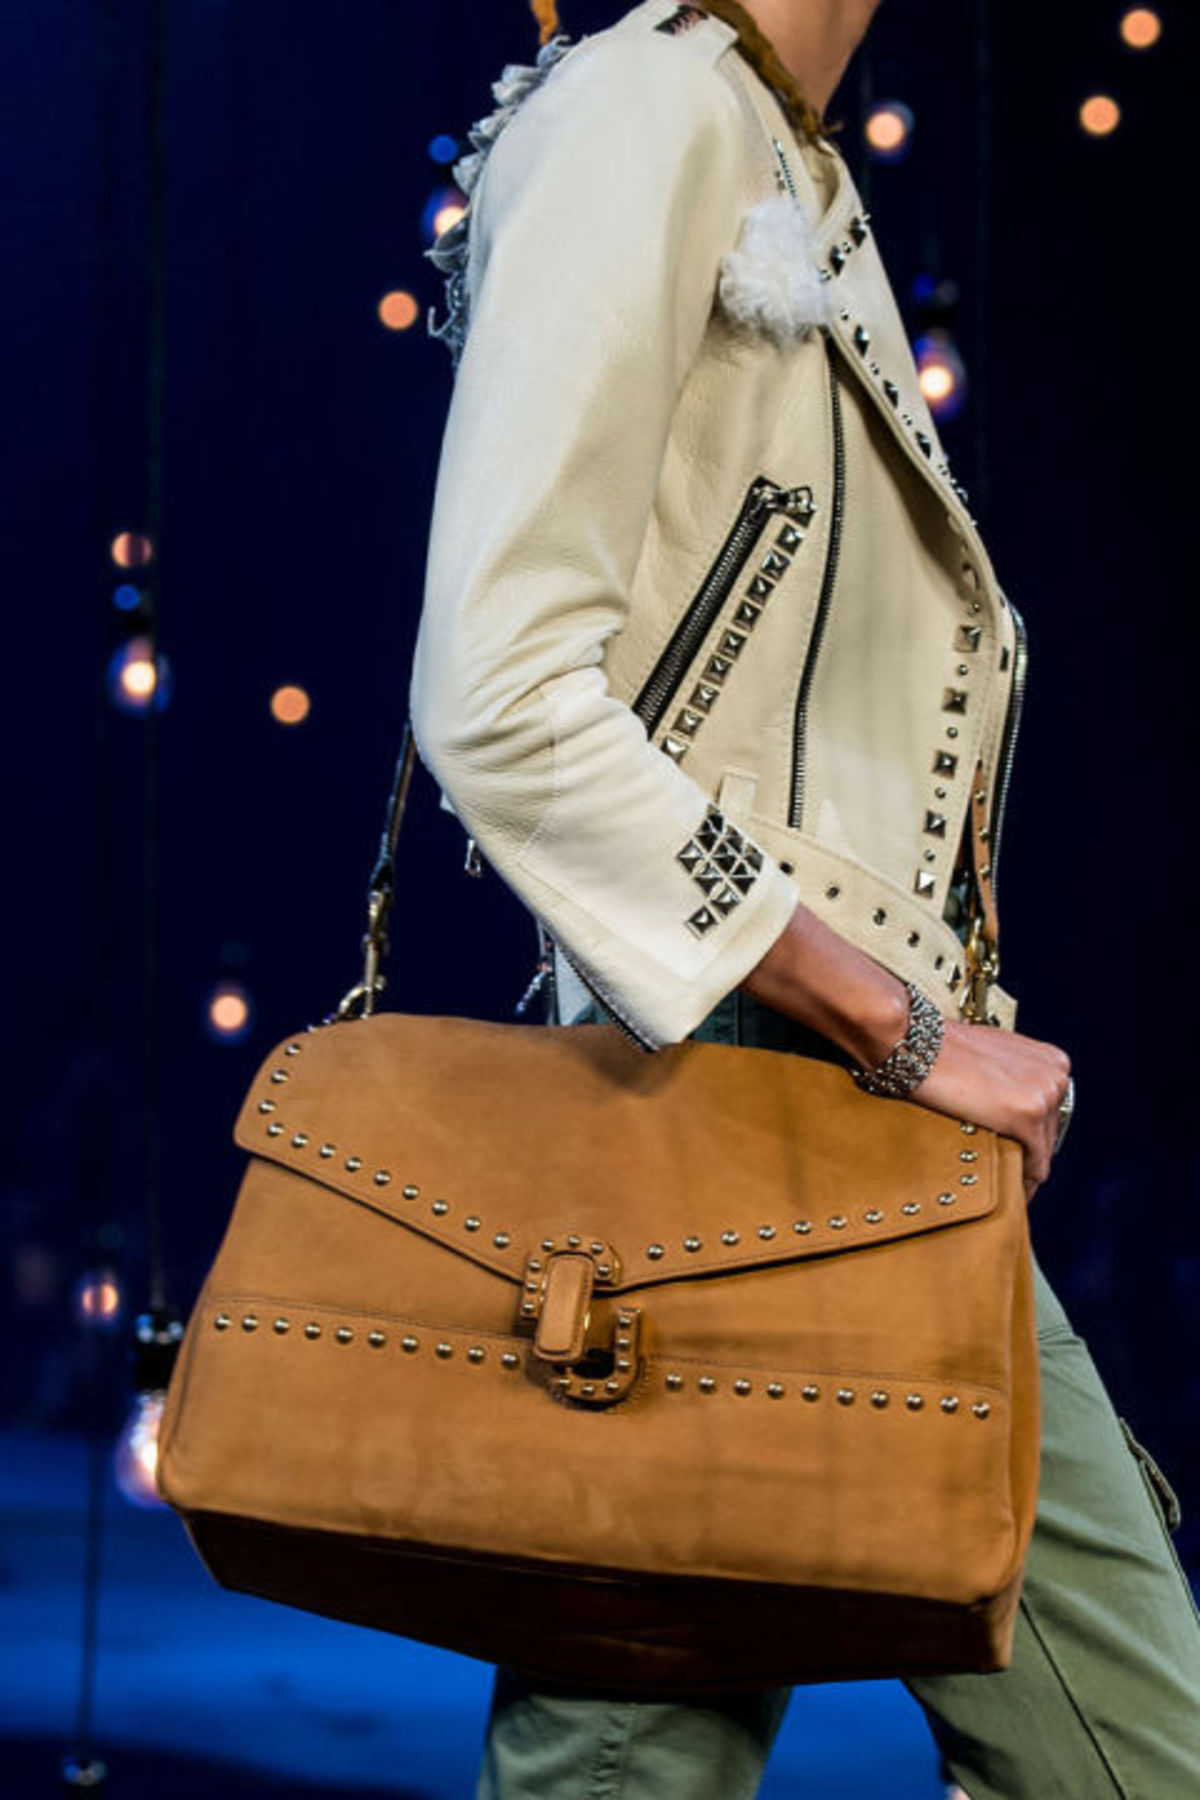 hbz-trends-2017-accessories-bags-oversize-jacobs-clp-rs17-7531